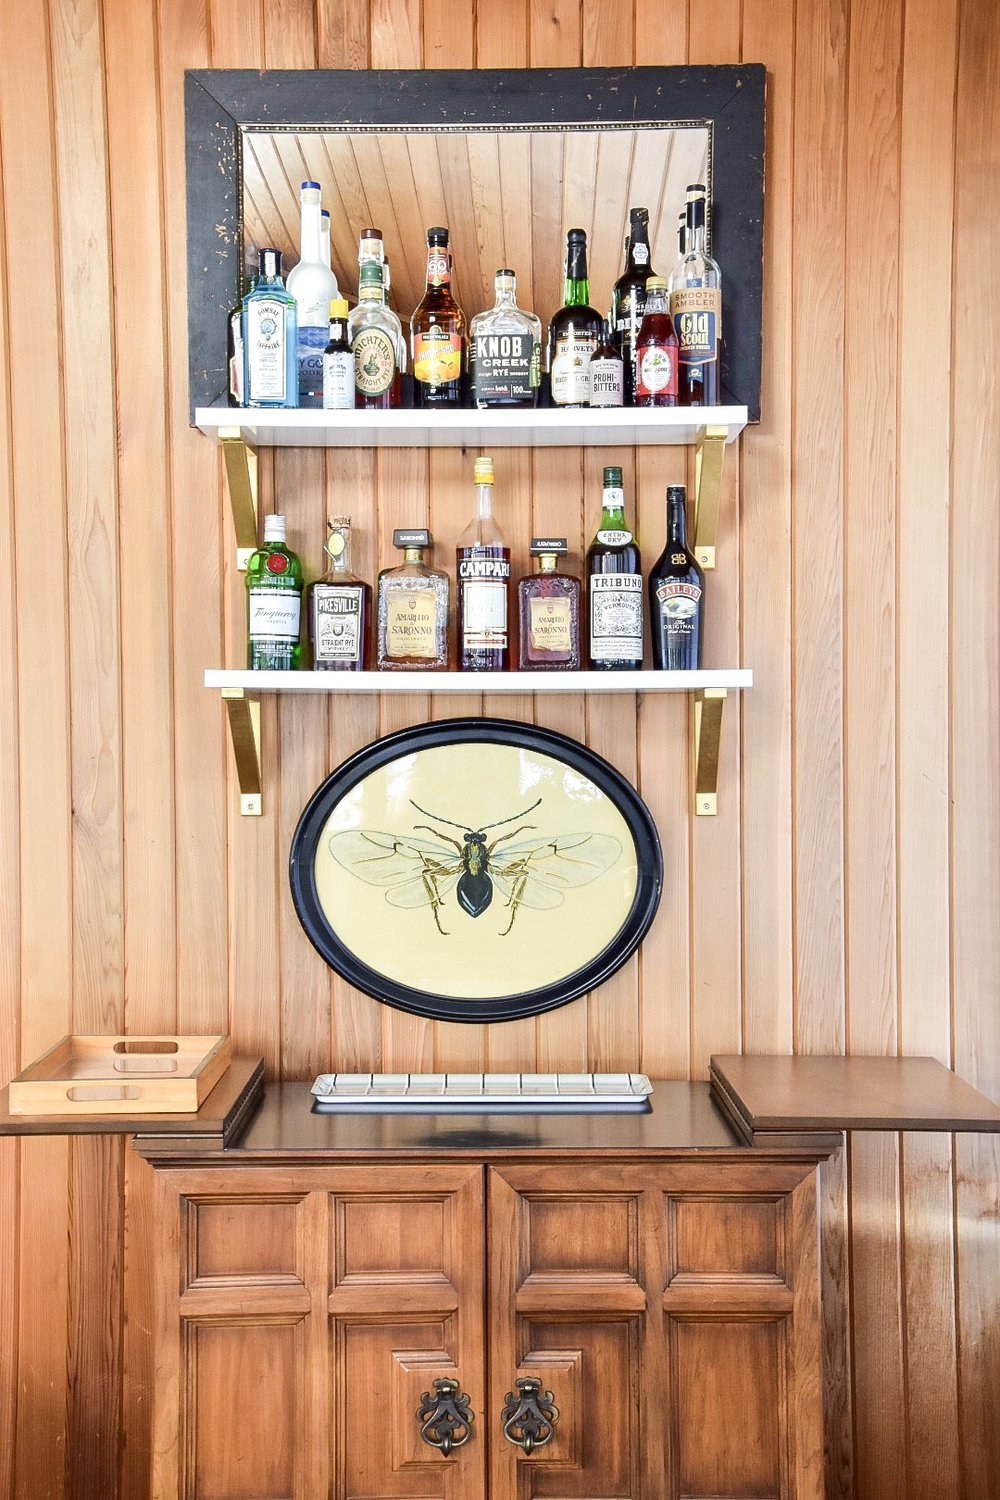 Eclectic Midcentury Bar Cart styling by the rath project